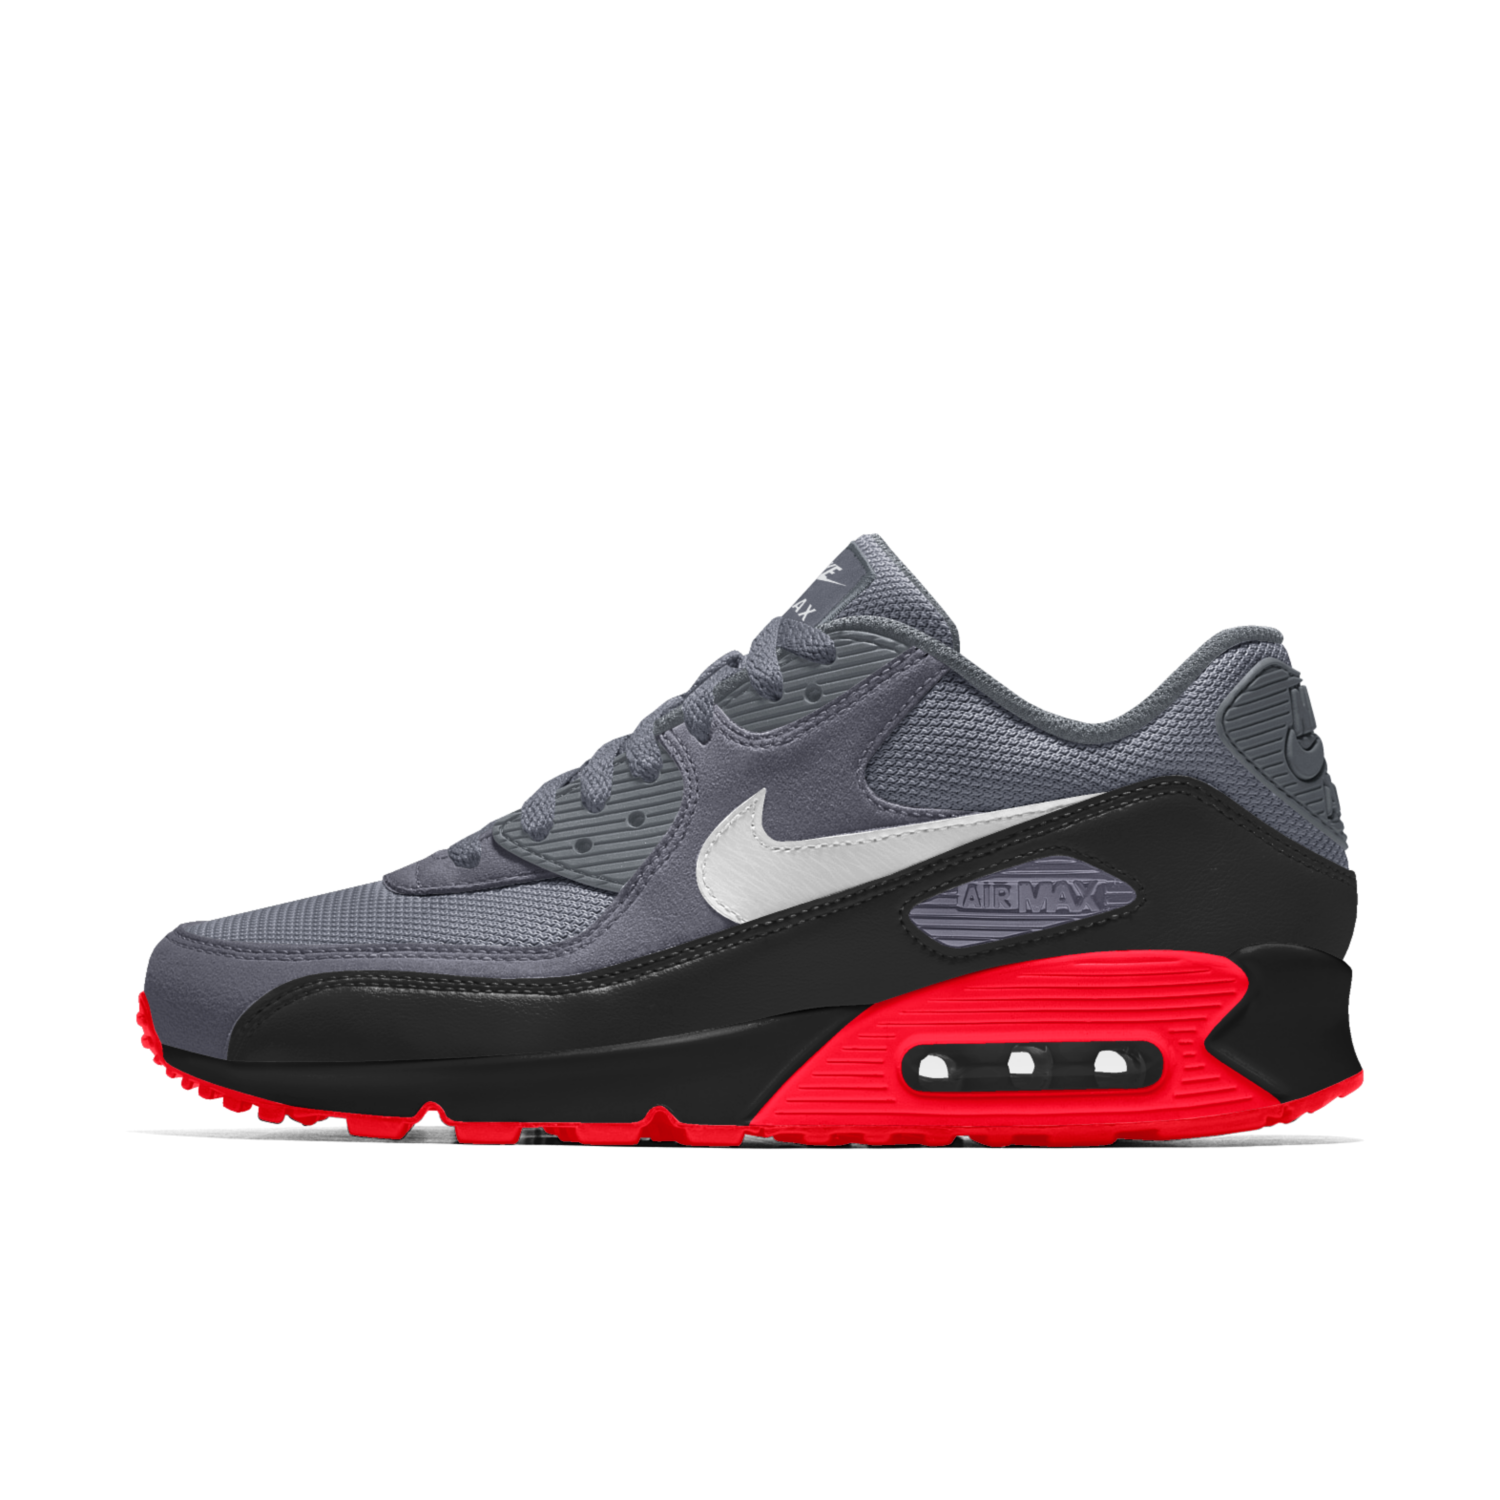 online store 6d9c6 bf73b Nike 90 iD Shoe   Nike   Pinterest   Air max, Air max 90 and Trainers